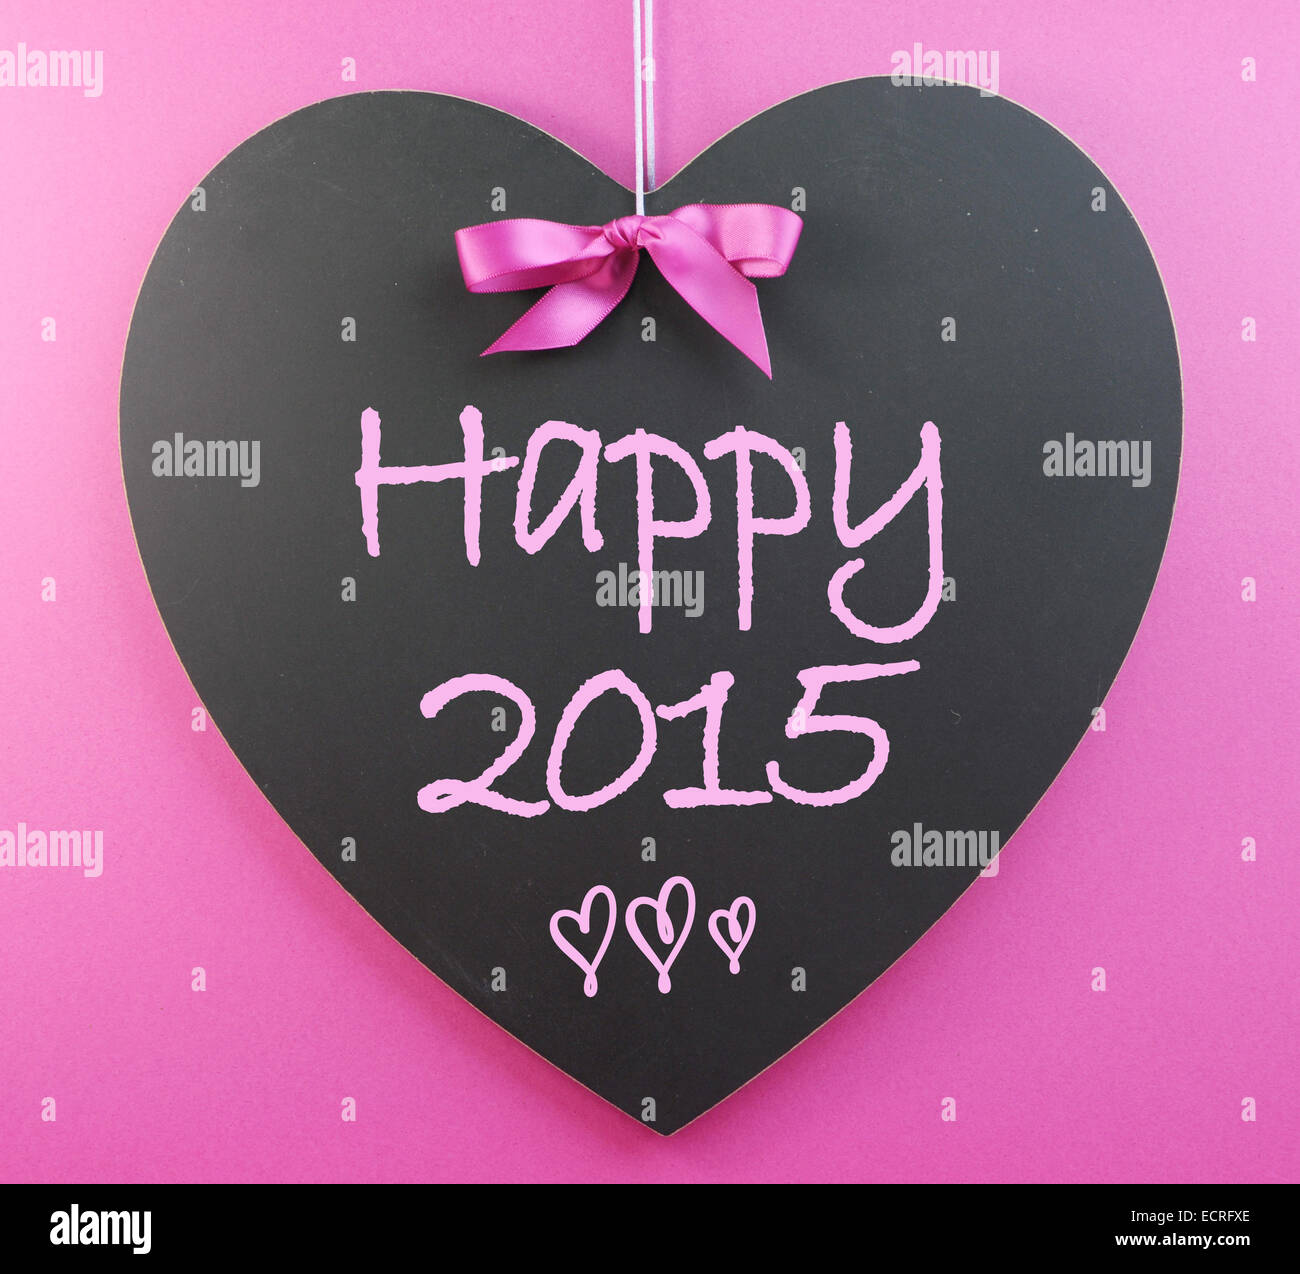 Happy New Year Greeting For 2015 Message On Heart Shape Blackboard